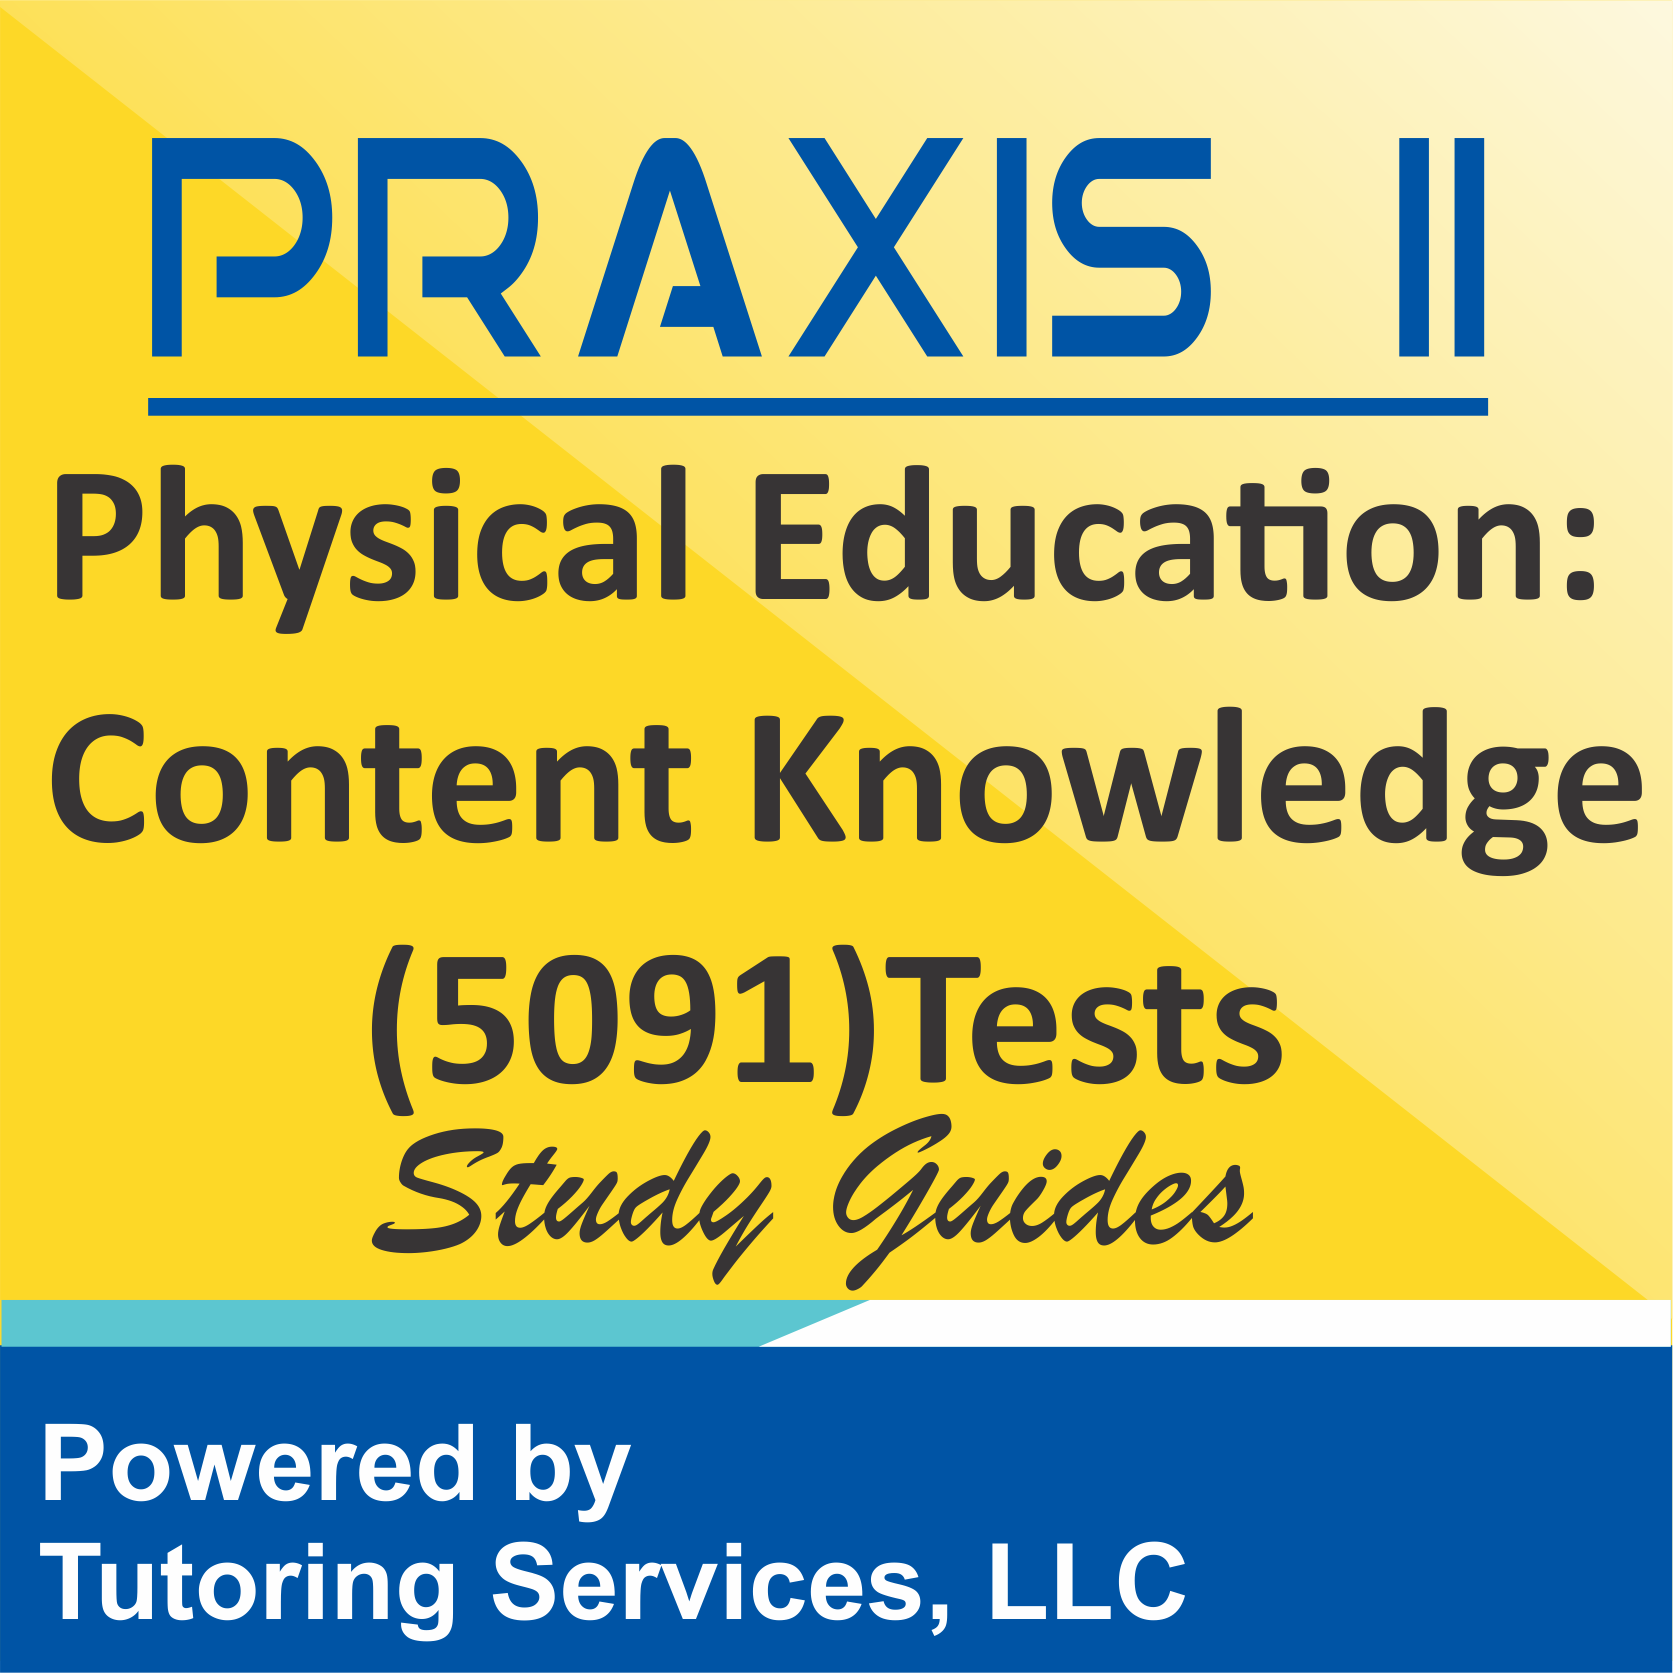 praxis ii physical education content knowledge 5091 examination ideas rh studyguide net Knowledge Activities Logical Mathematical Knowledge